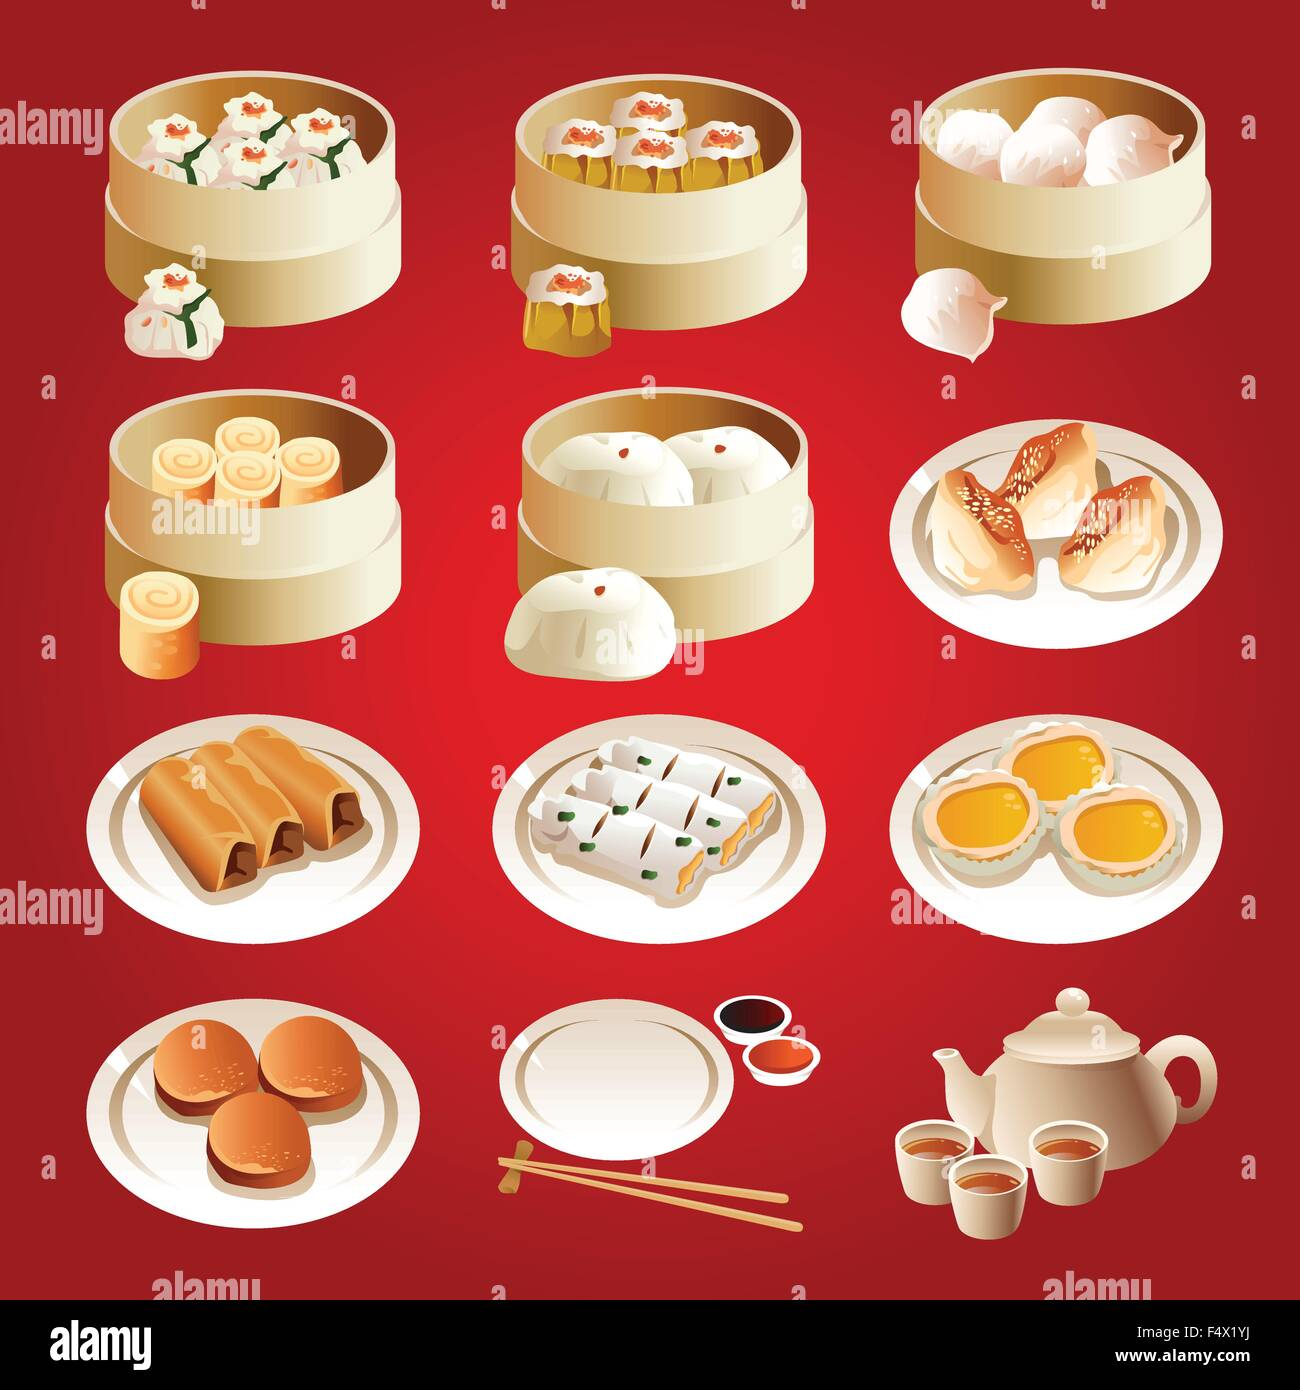 a vector illustration of dim sum icon sets stock vector image art alamy https www alamy com stock photo a vector illustration of dim sum icon sets 89082774 html